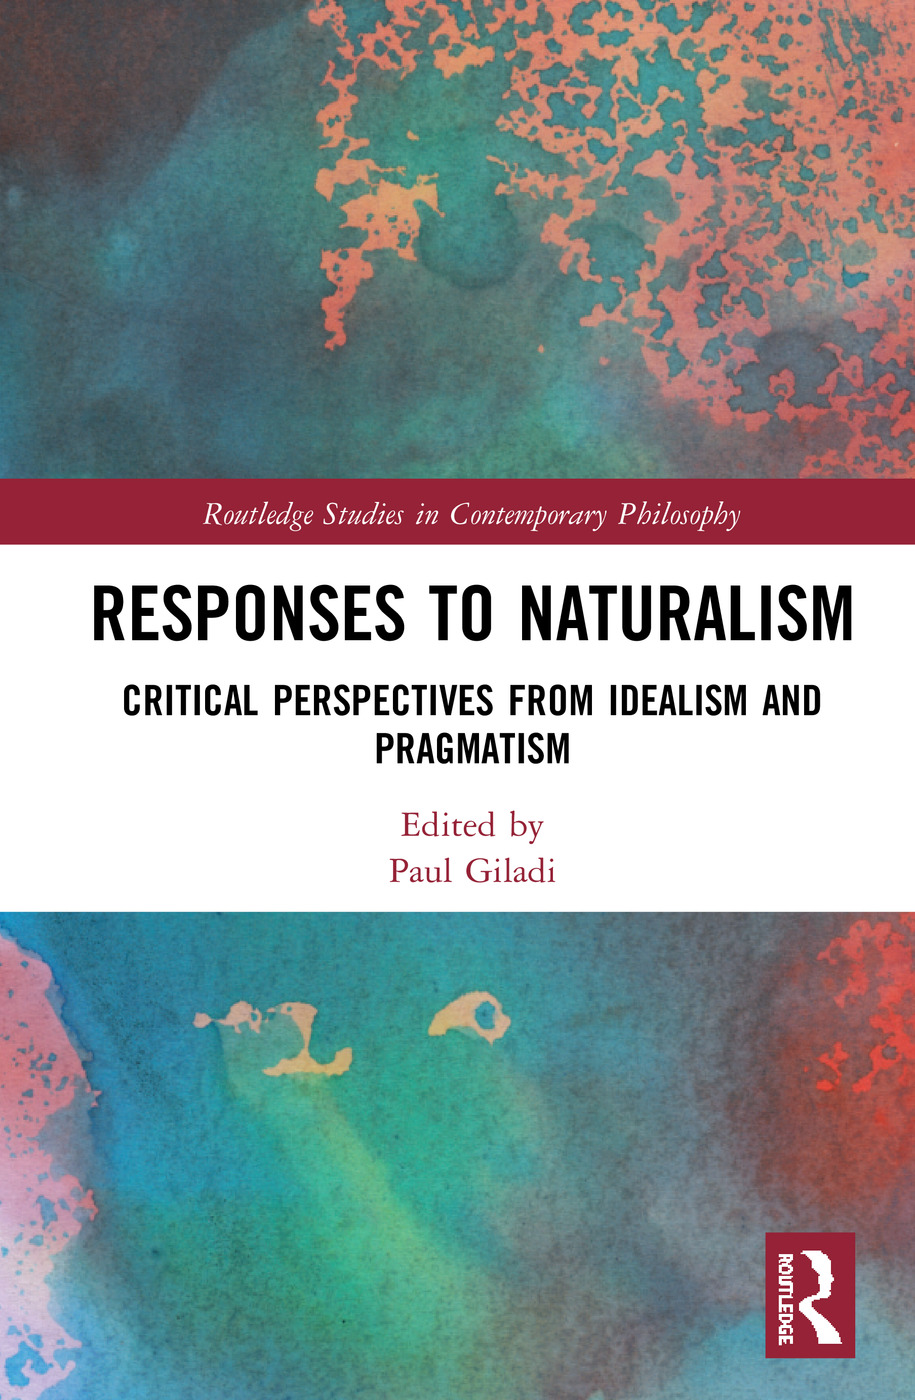 Responses to Naturalism: Critical Perspectives from Idealism and Pragmatism book cover